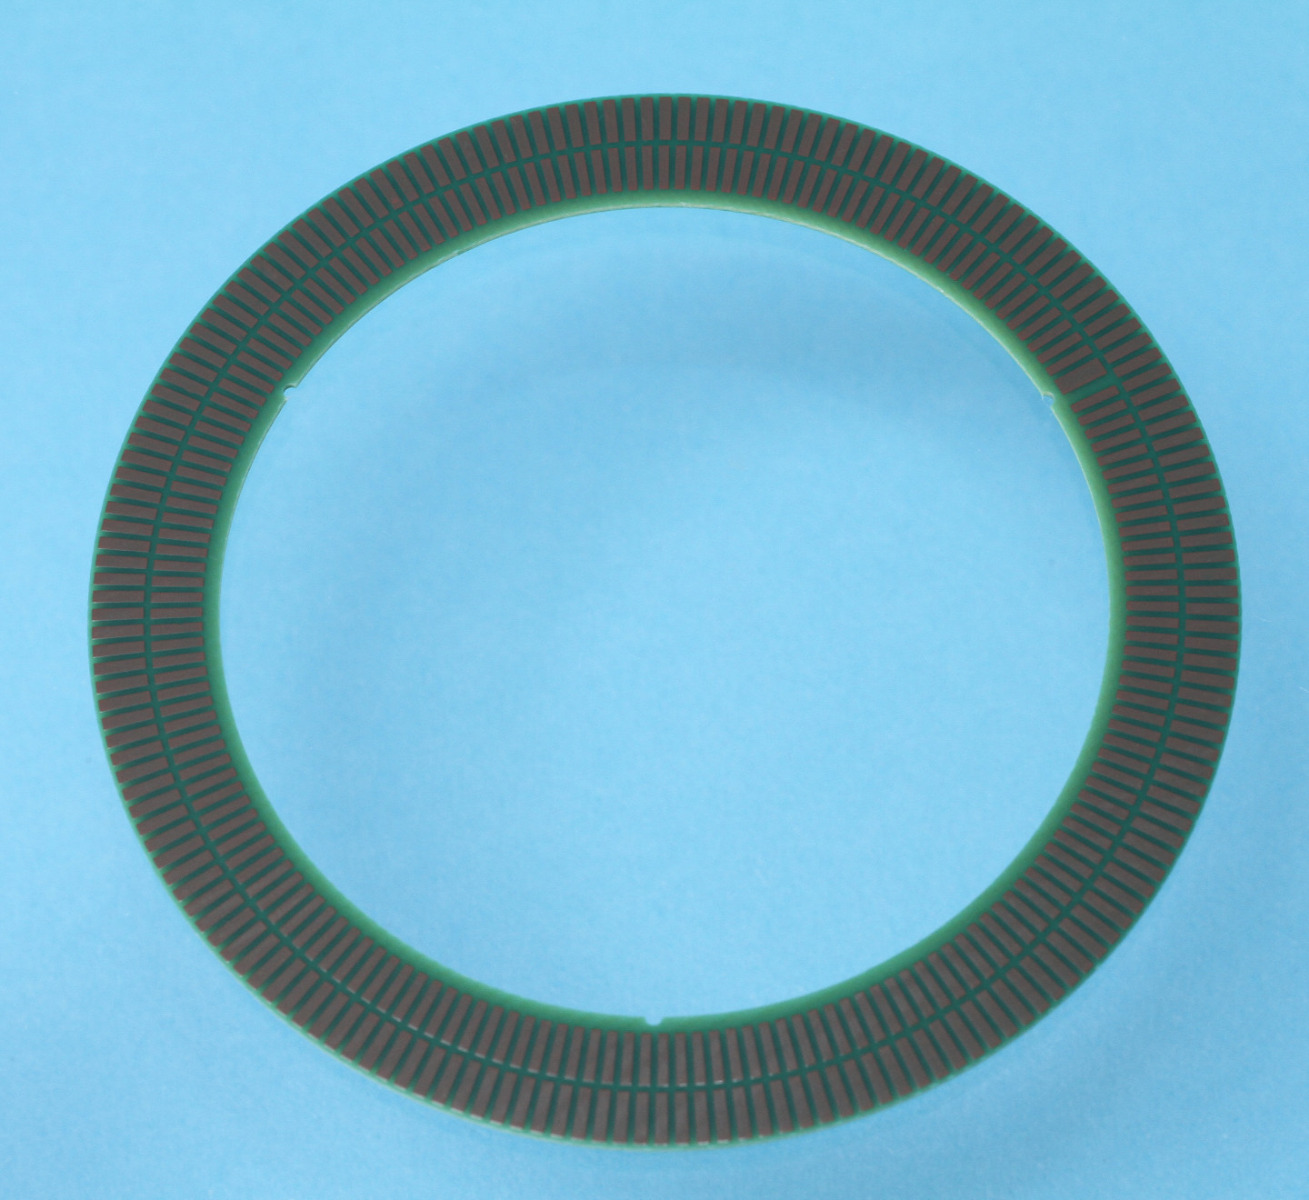 TPCD07 Codewheel with 180 periods, inner diameter 56 mm and outer diameter 72.6 mm for Incremental Encoders IT3402C, IT3403C and IT5602C